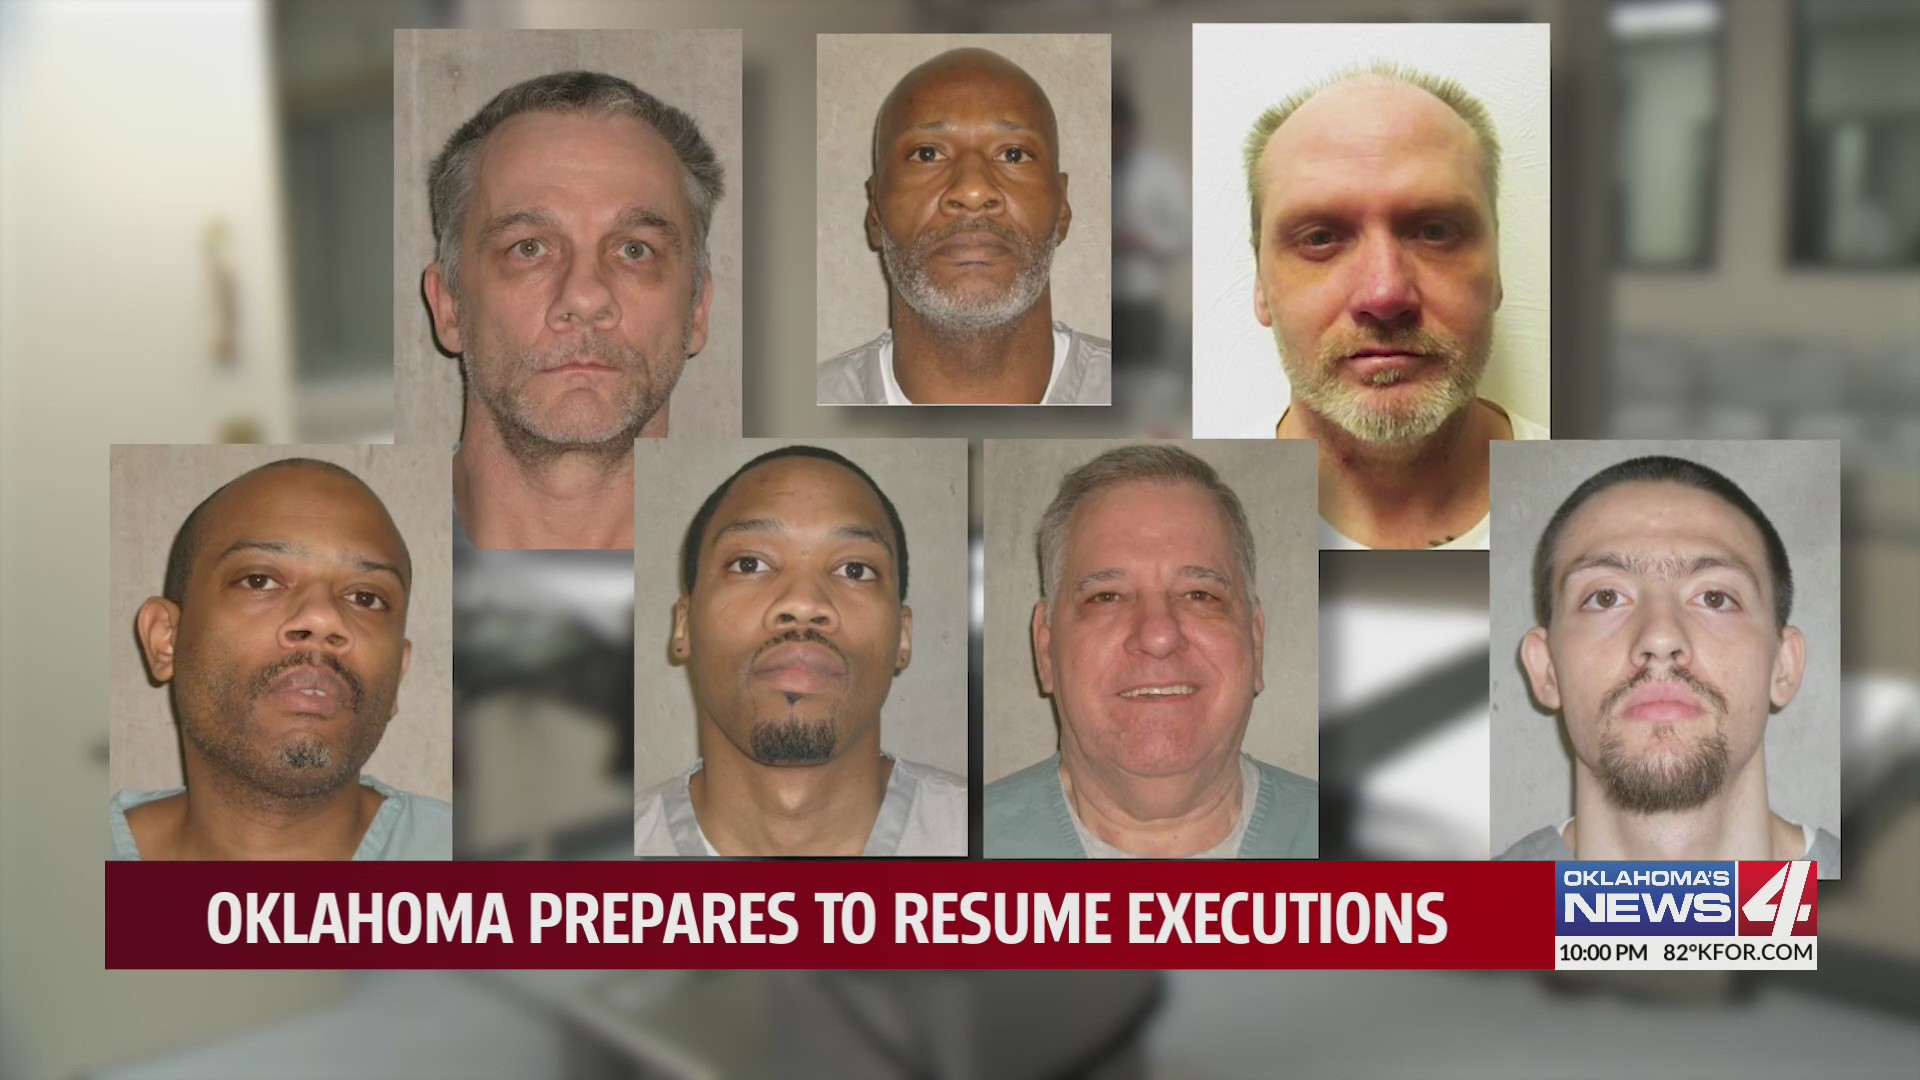 Mugshots of the seven death row inmates scheduled to be executed in late 2021/early 2022